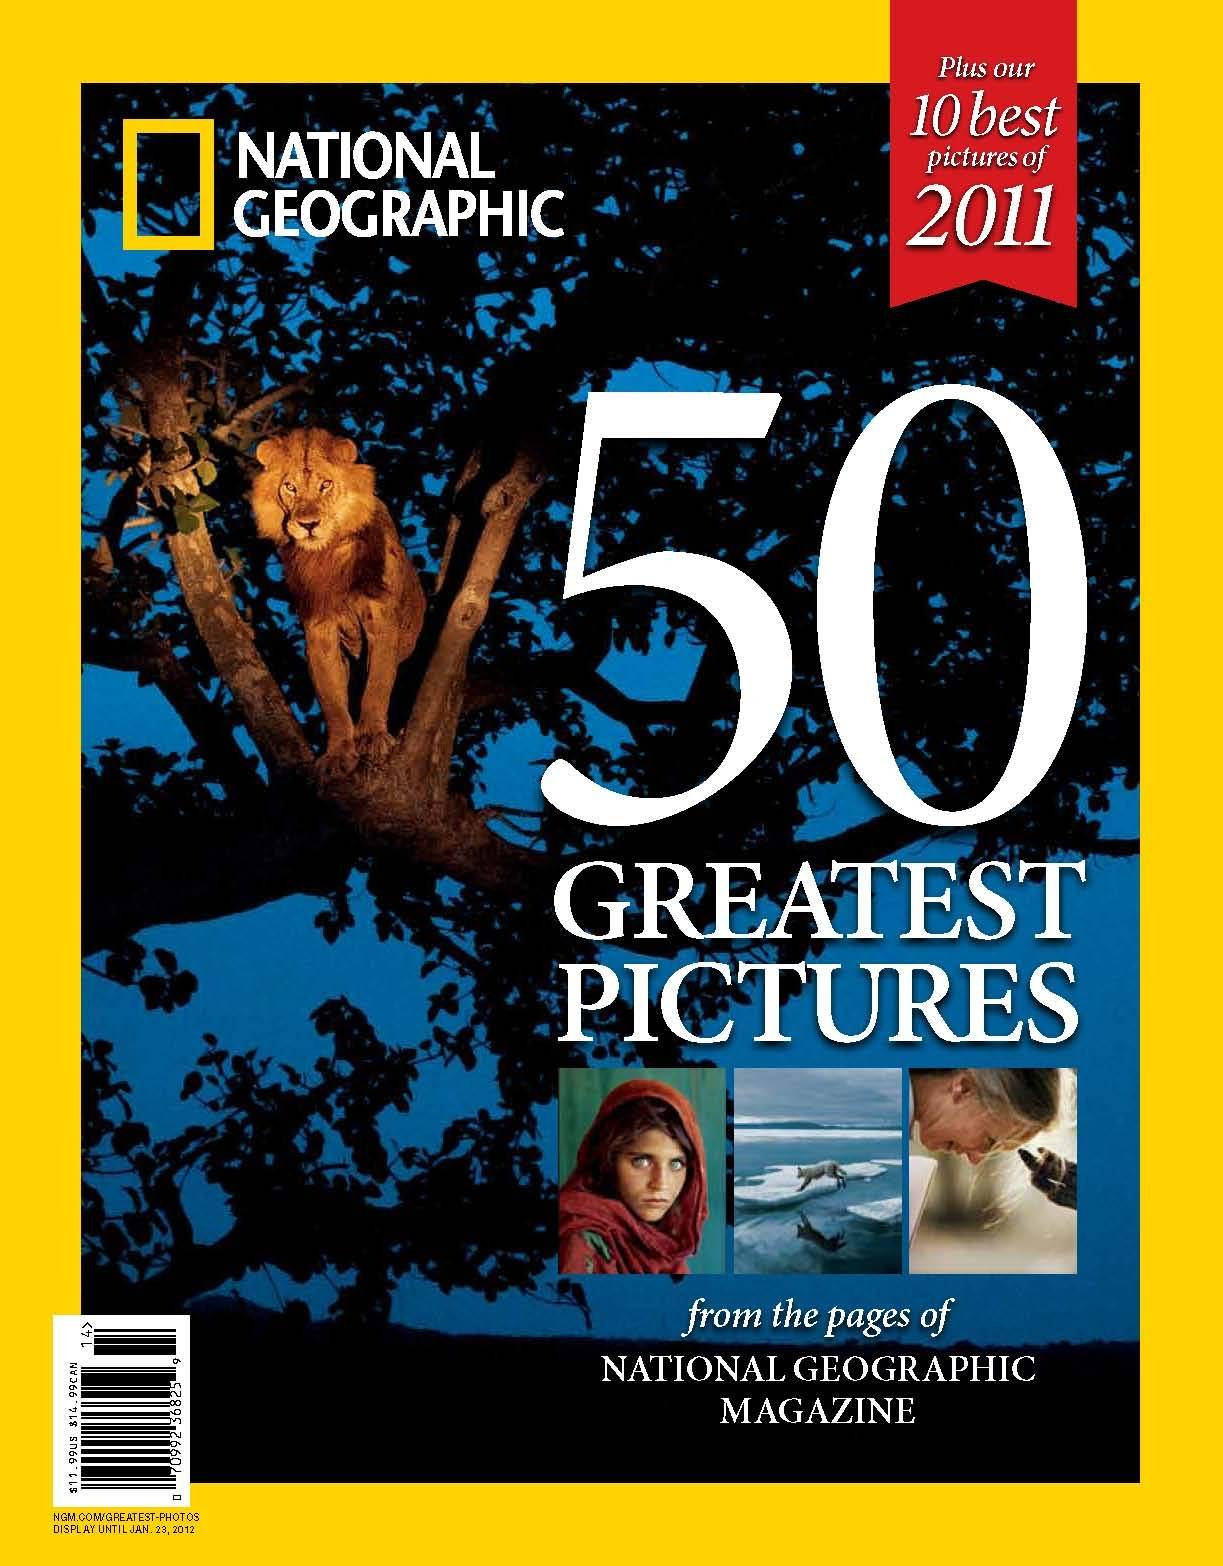 Photo: Joel Sartore's photo of a tree-climbing lion in Africa's Albertine Rift is featured on the cover of the 50 Greatest Pictures special issue of National Geographic magazine.